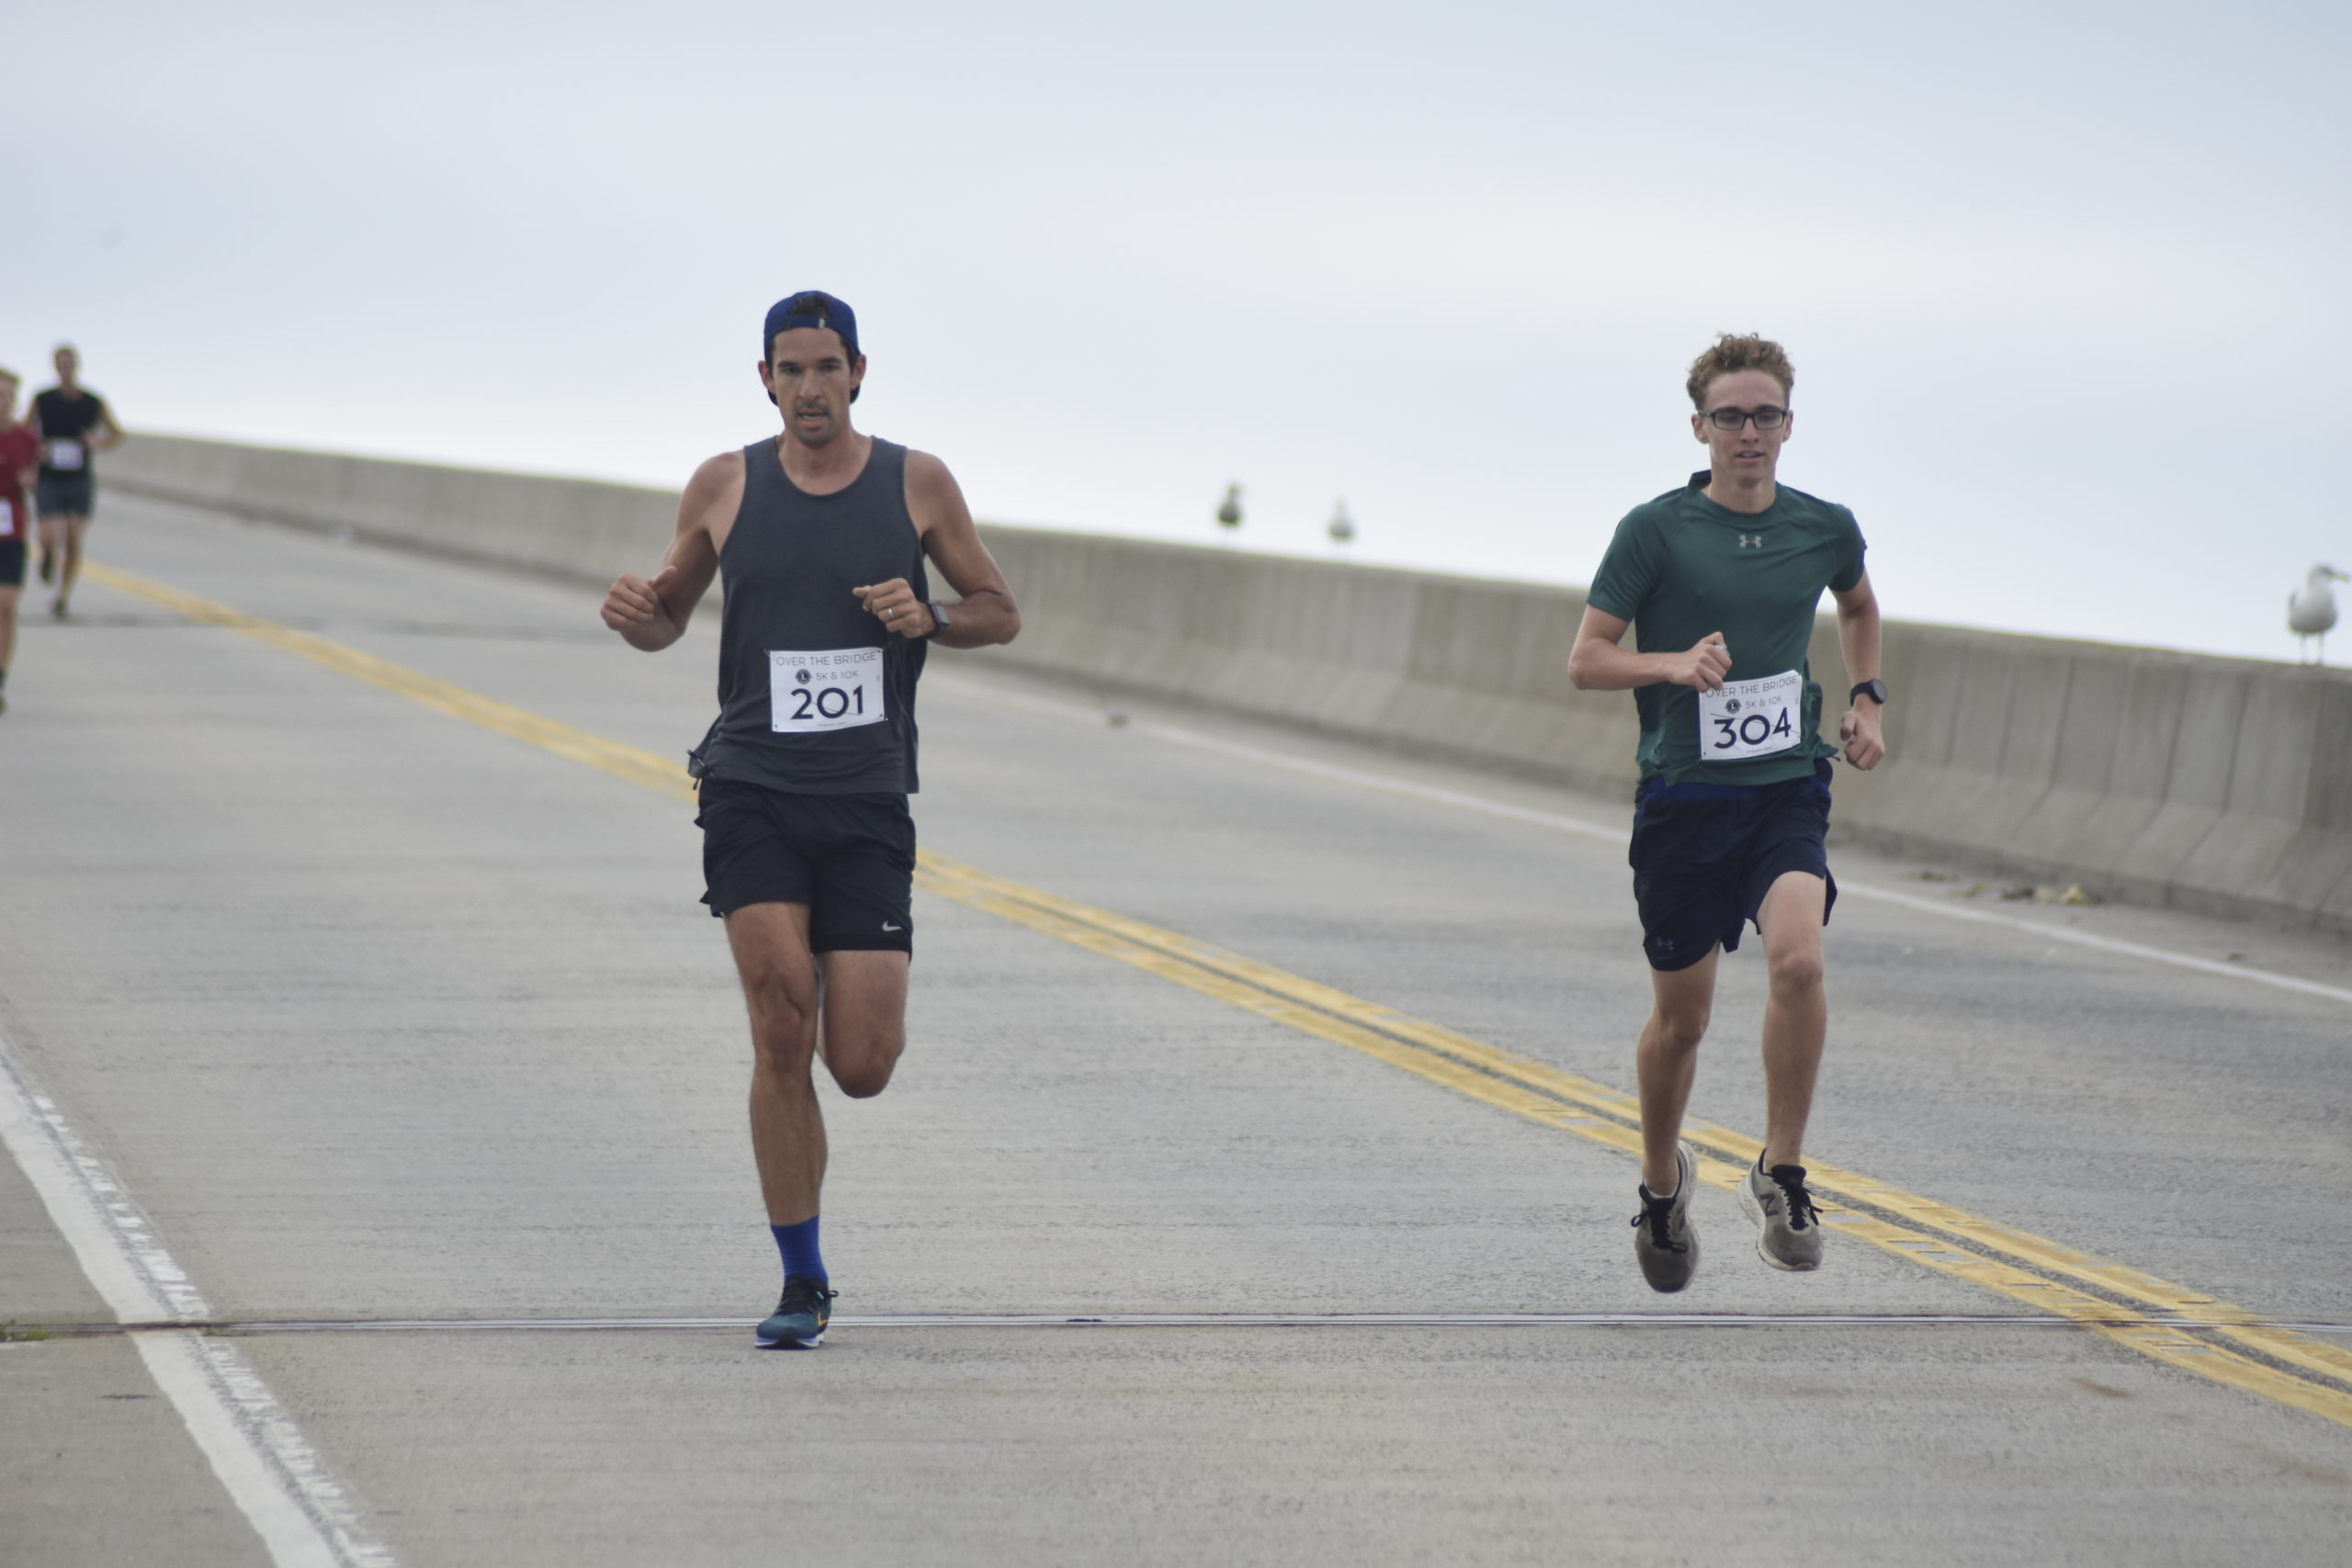 Jack Stevens, left, and Luca Villano lead the initial pack of runners over Ponquogue Bridge on Saturday morning. Stevens and Villano finished first and second, respectively, in the 5K.